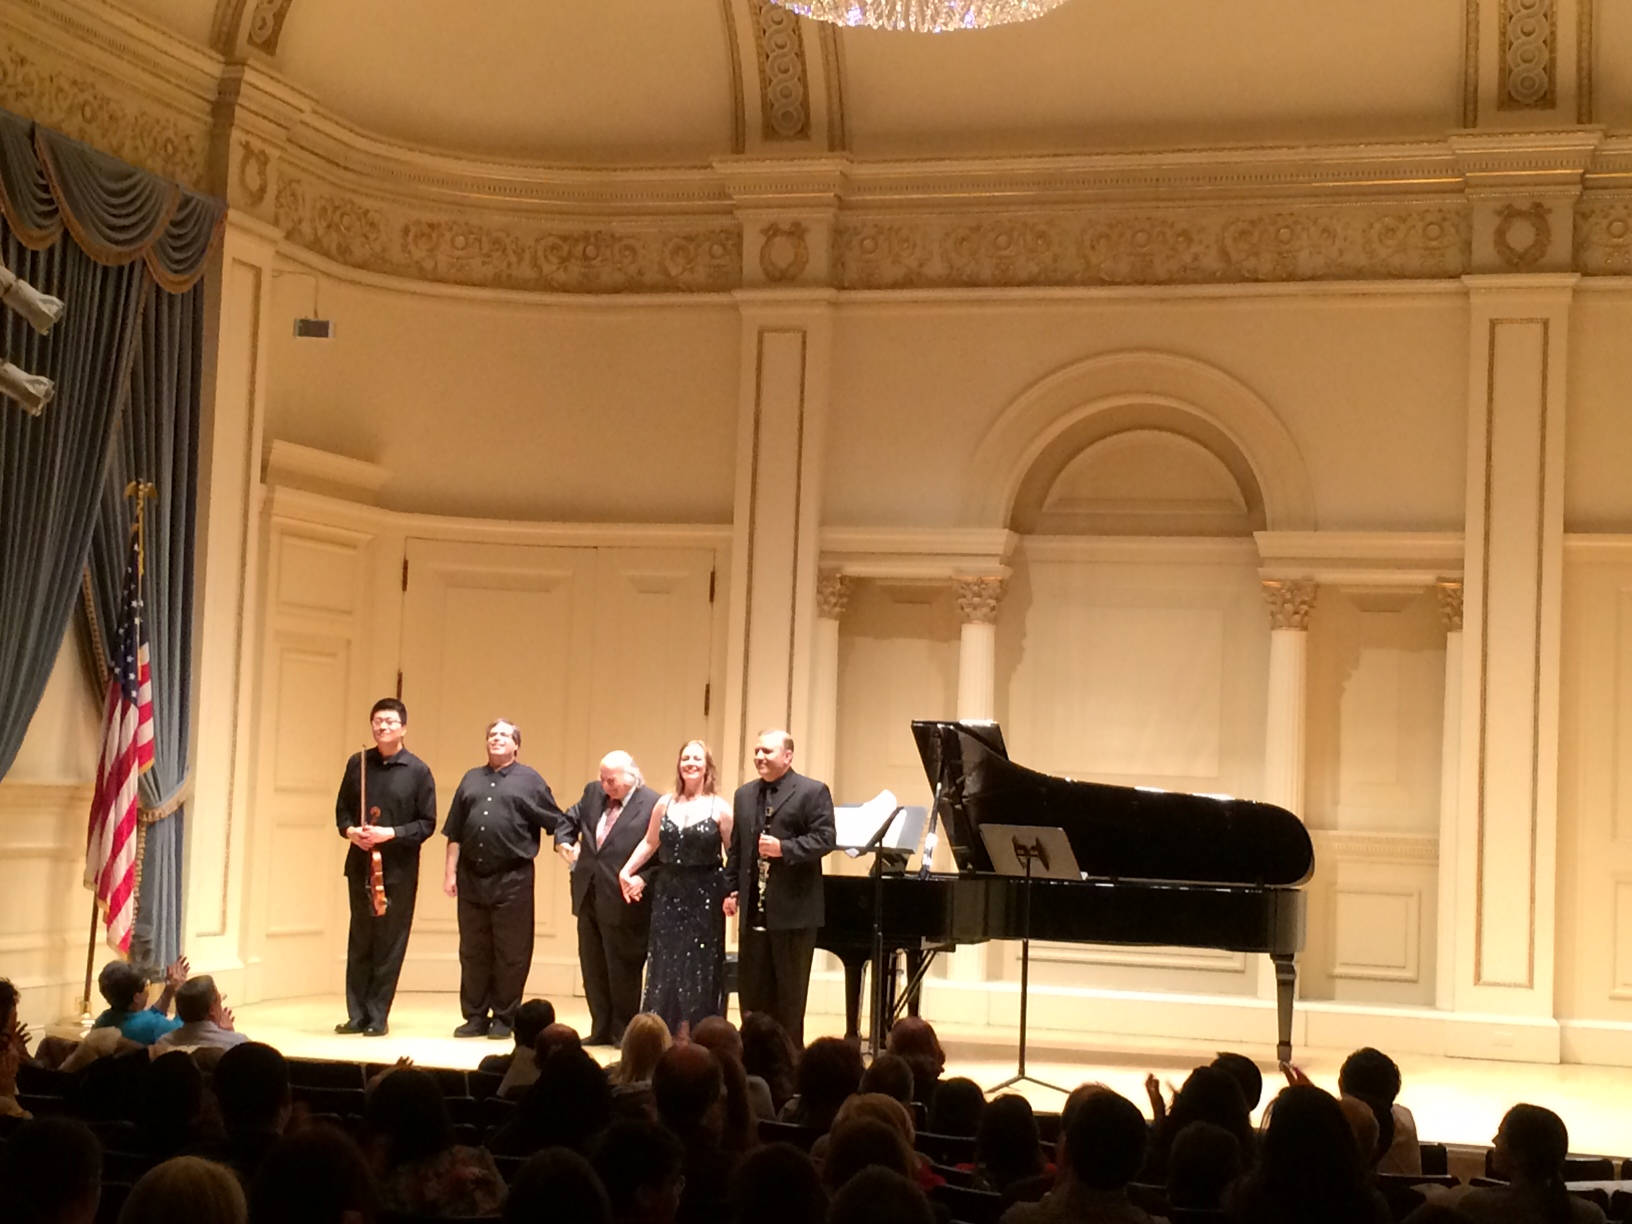 Distinguished Concerts International New York (DCINY) presents The Music of Dinos Constantinides in Concert in Review